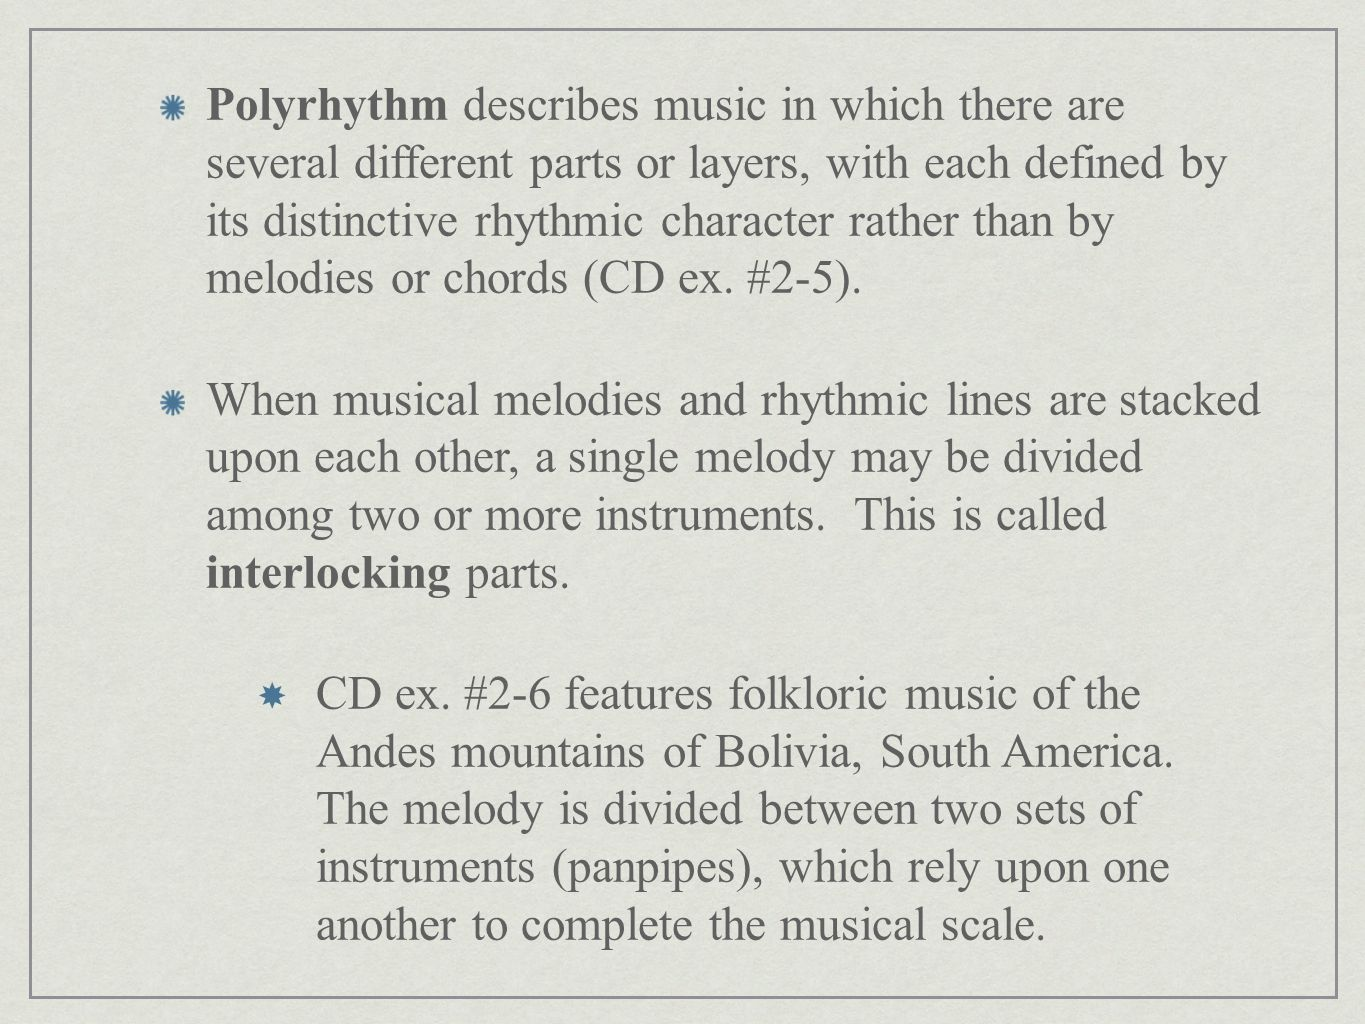 Polyrhythm describes music in which there are several different parts or layers, with each defined by its distinctive rhythmic character rather than by melodies or chords (CD ex. #2-5).